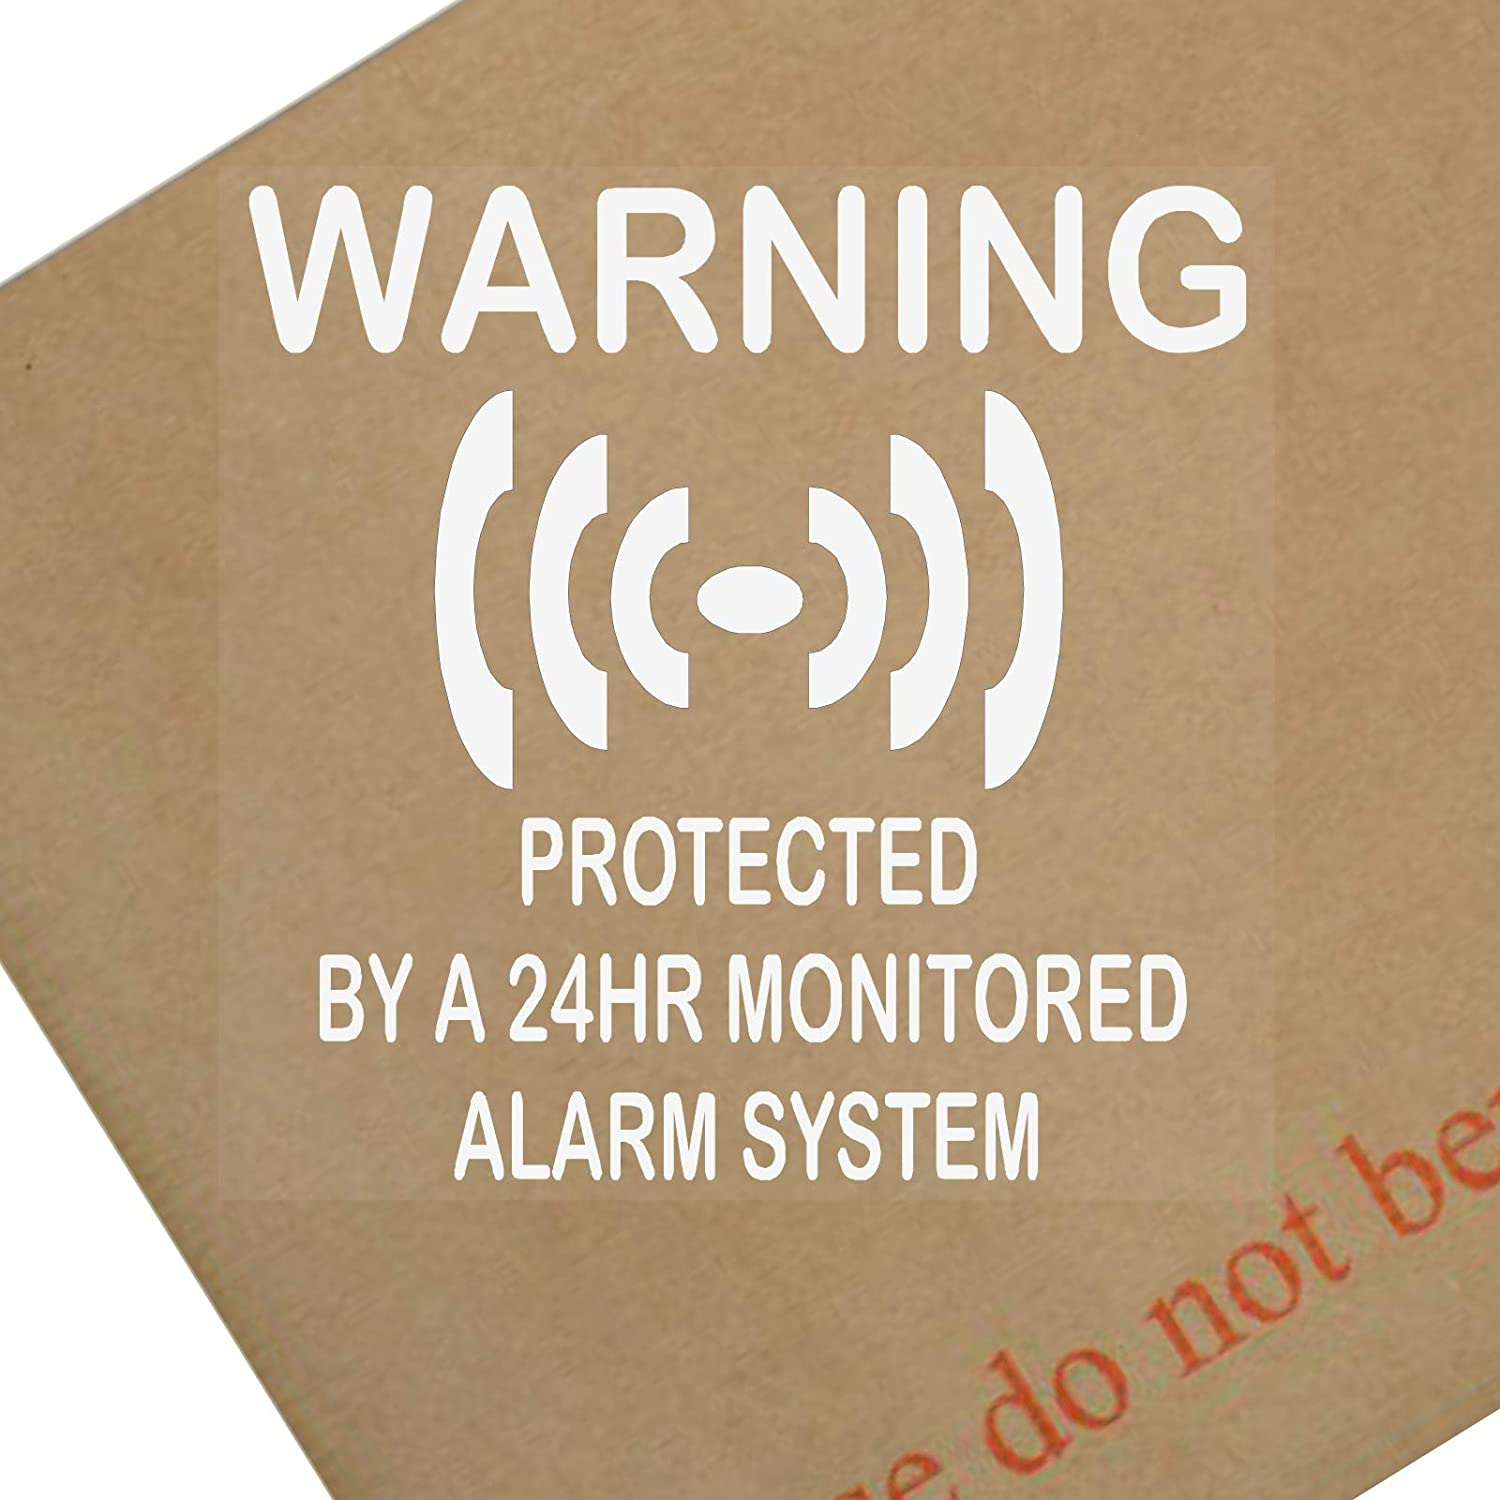 6 x Protected by a 24hr Monitored Alarm System Stickers for Windows-Security Warning Signs for House, Flat, Business,Office,Shop,Property-Self Adhesive Vinyl Sign Platinum Place